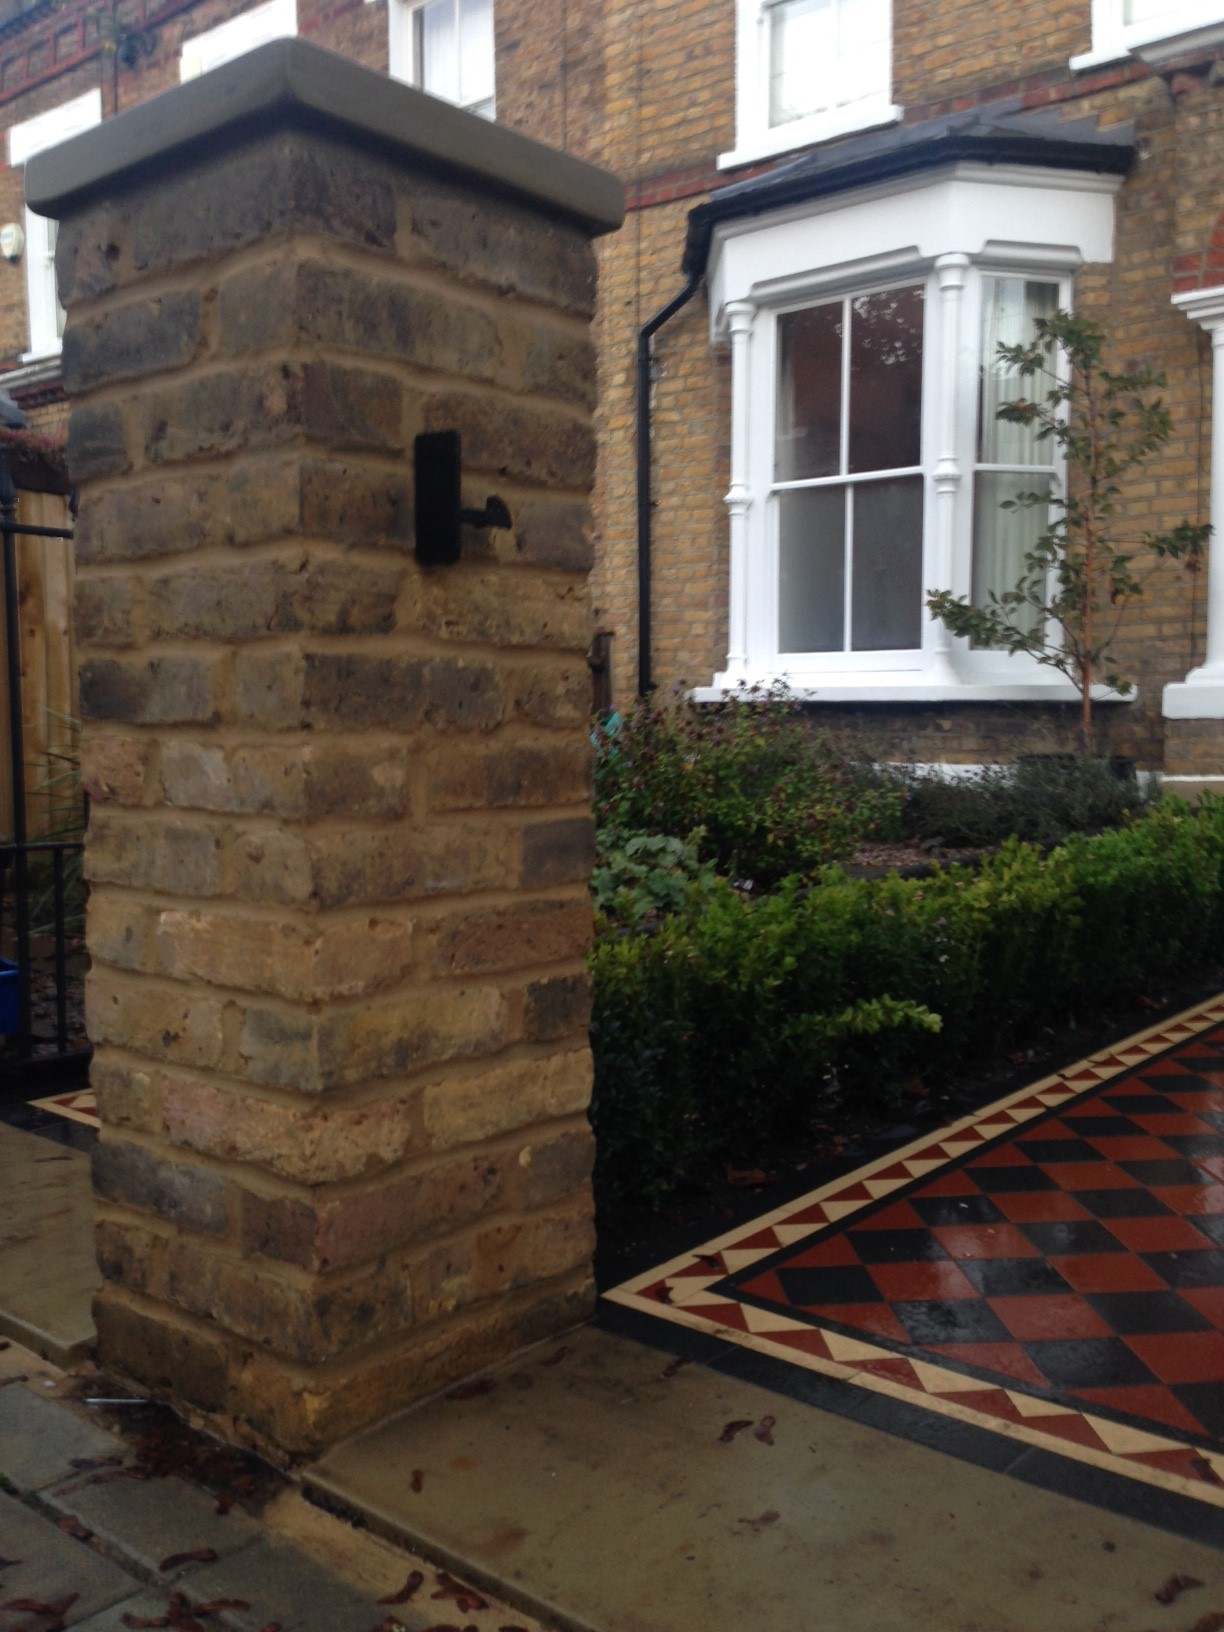 Brixton Herne Hill Victorian Mosaic Tile Path black and red tile with Yorkstone pier cap entrance stone and imperial yellow brick london stock wall (14)